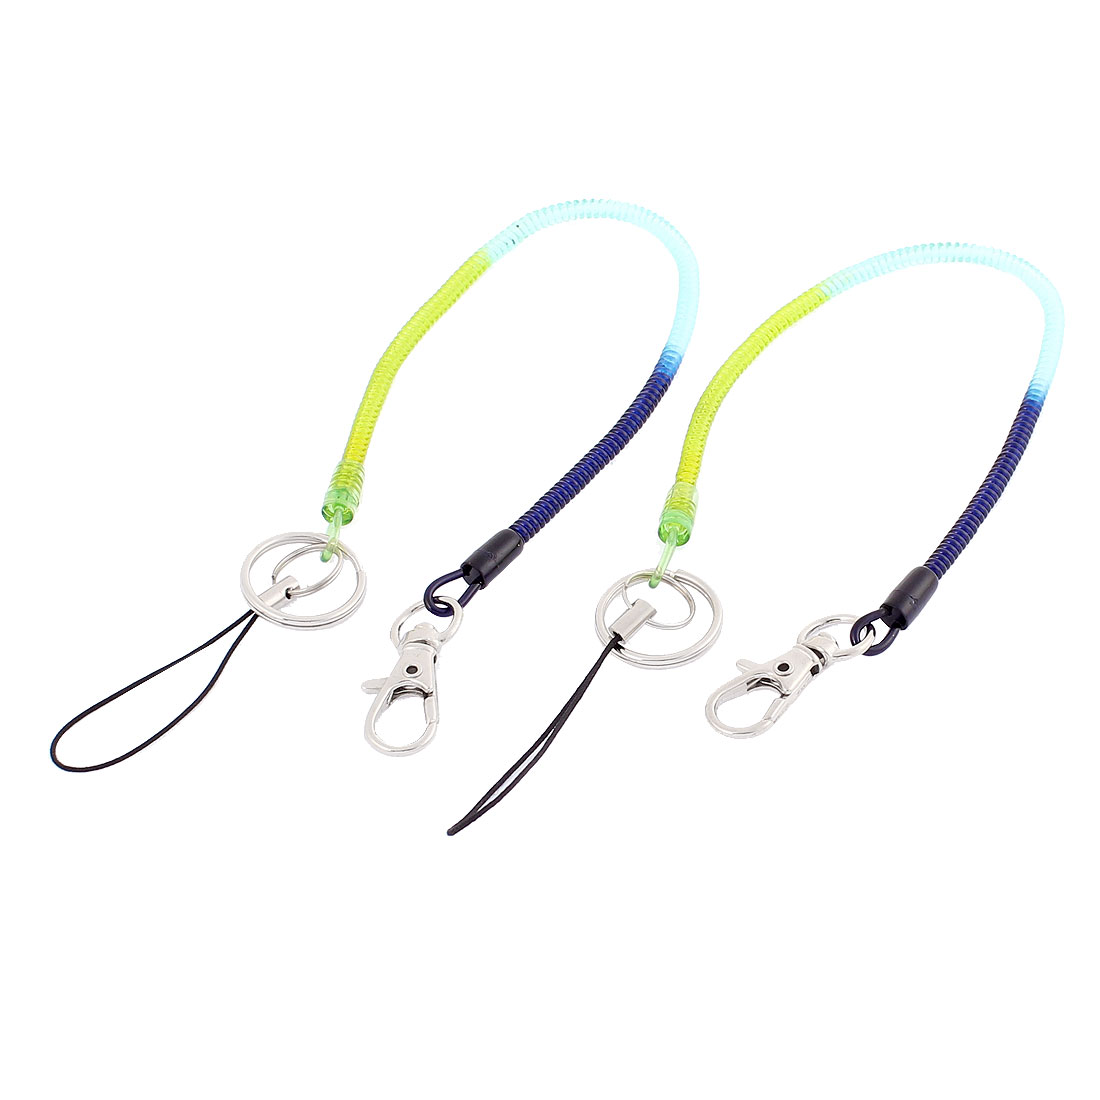 30cm Length Multicolor Plastic Lobster Clasp Key Ring Keychain Strap Flexible Spring Coil Cord 2 Pcs